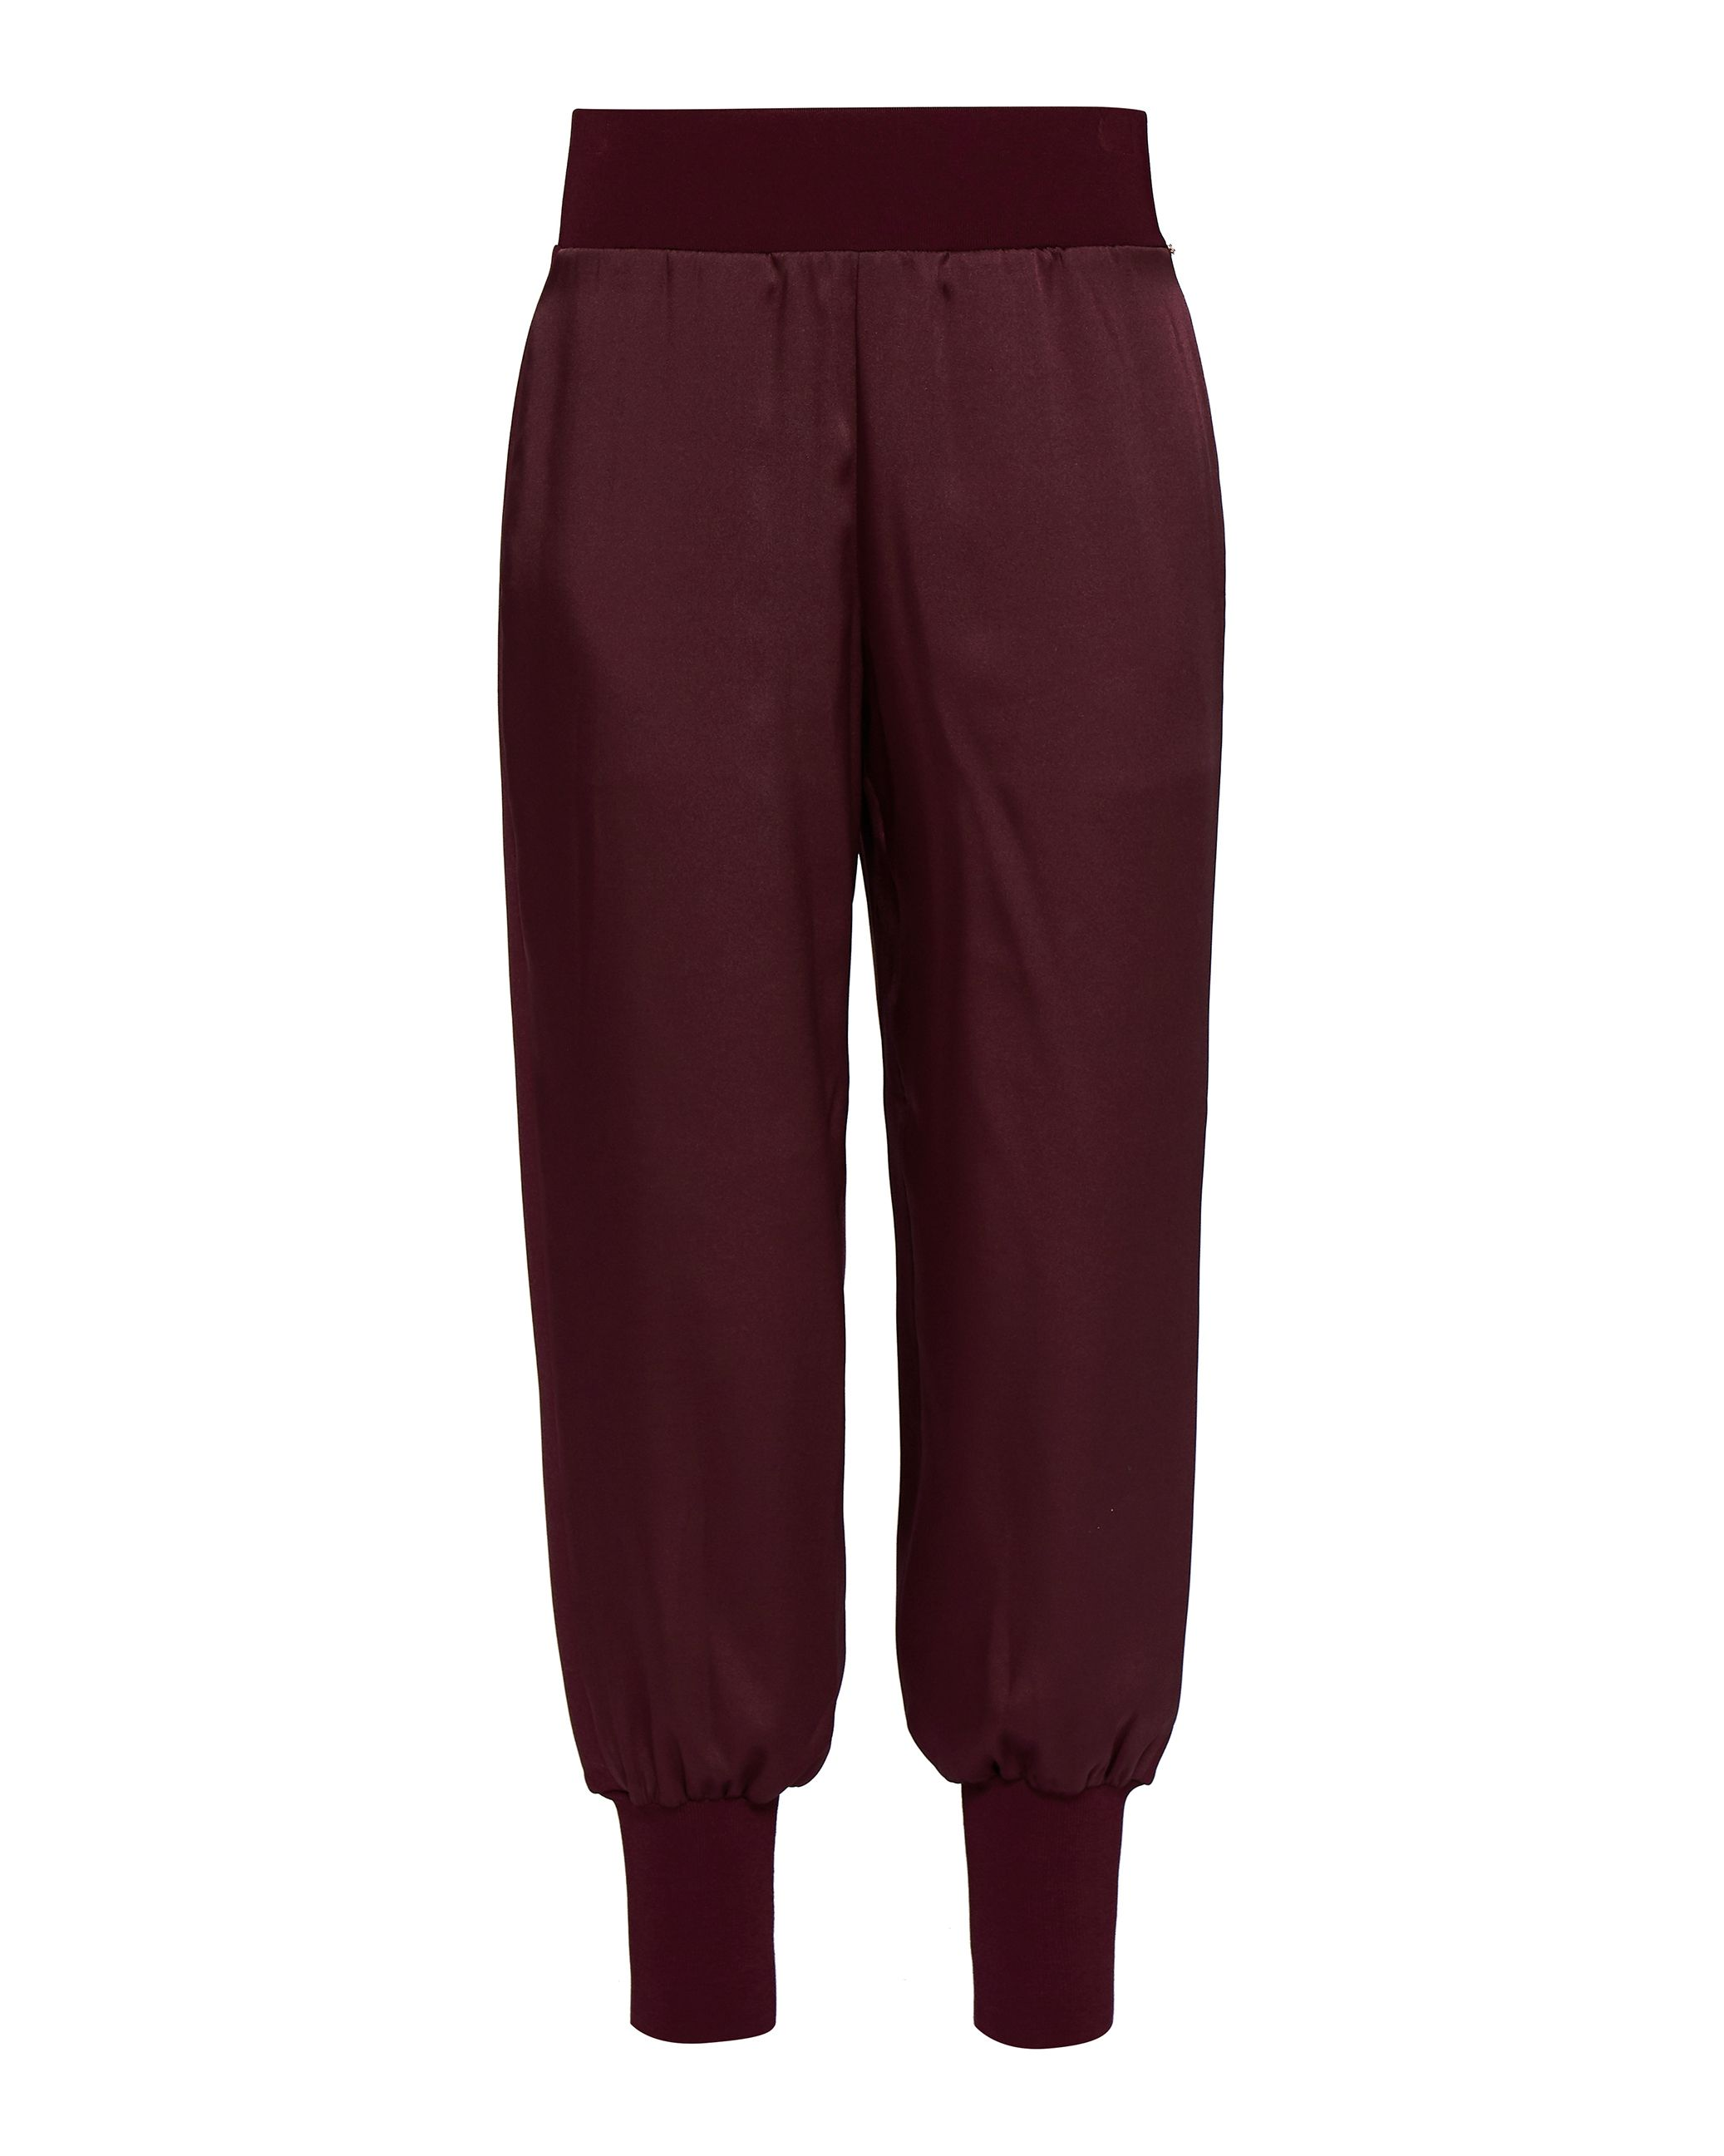 Ted Baker Aibrey Satin Jogger With Knit Trims, Oxblood